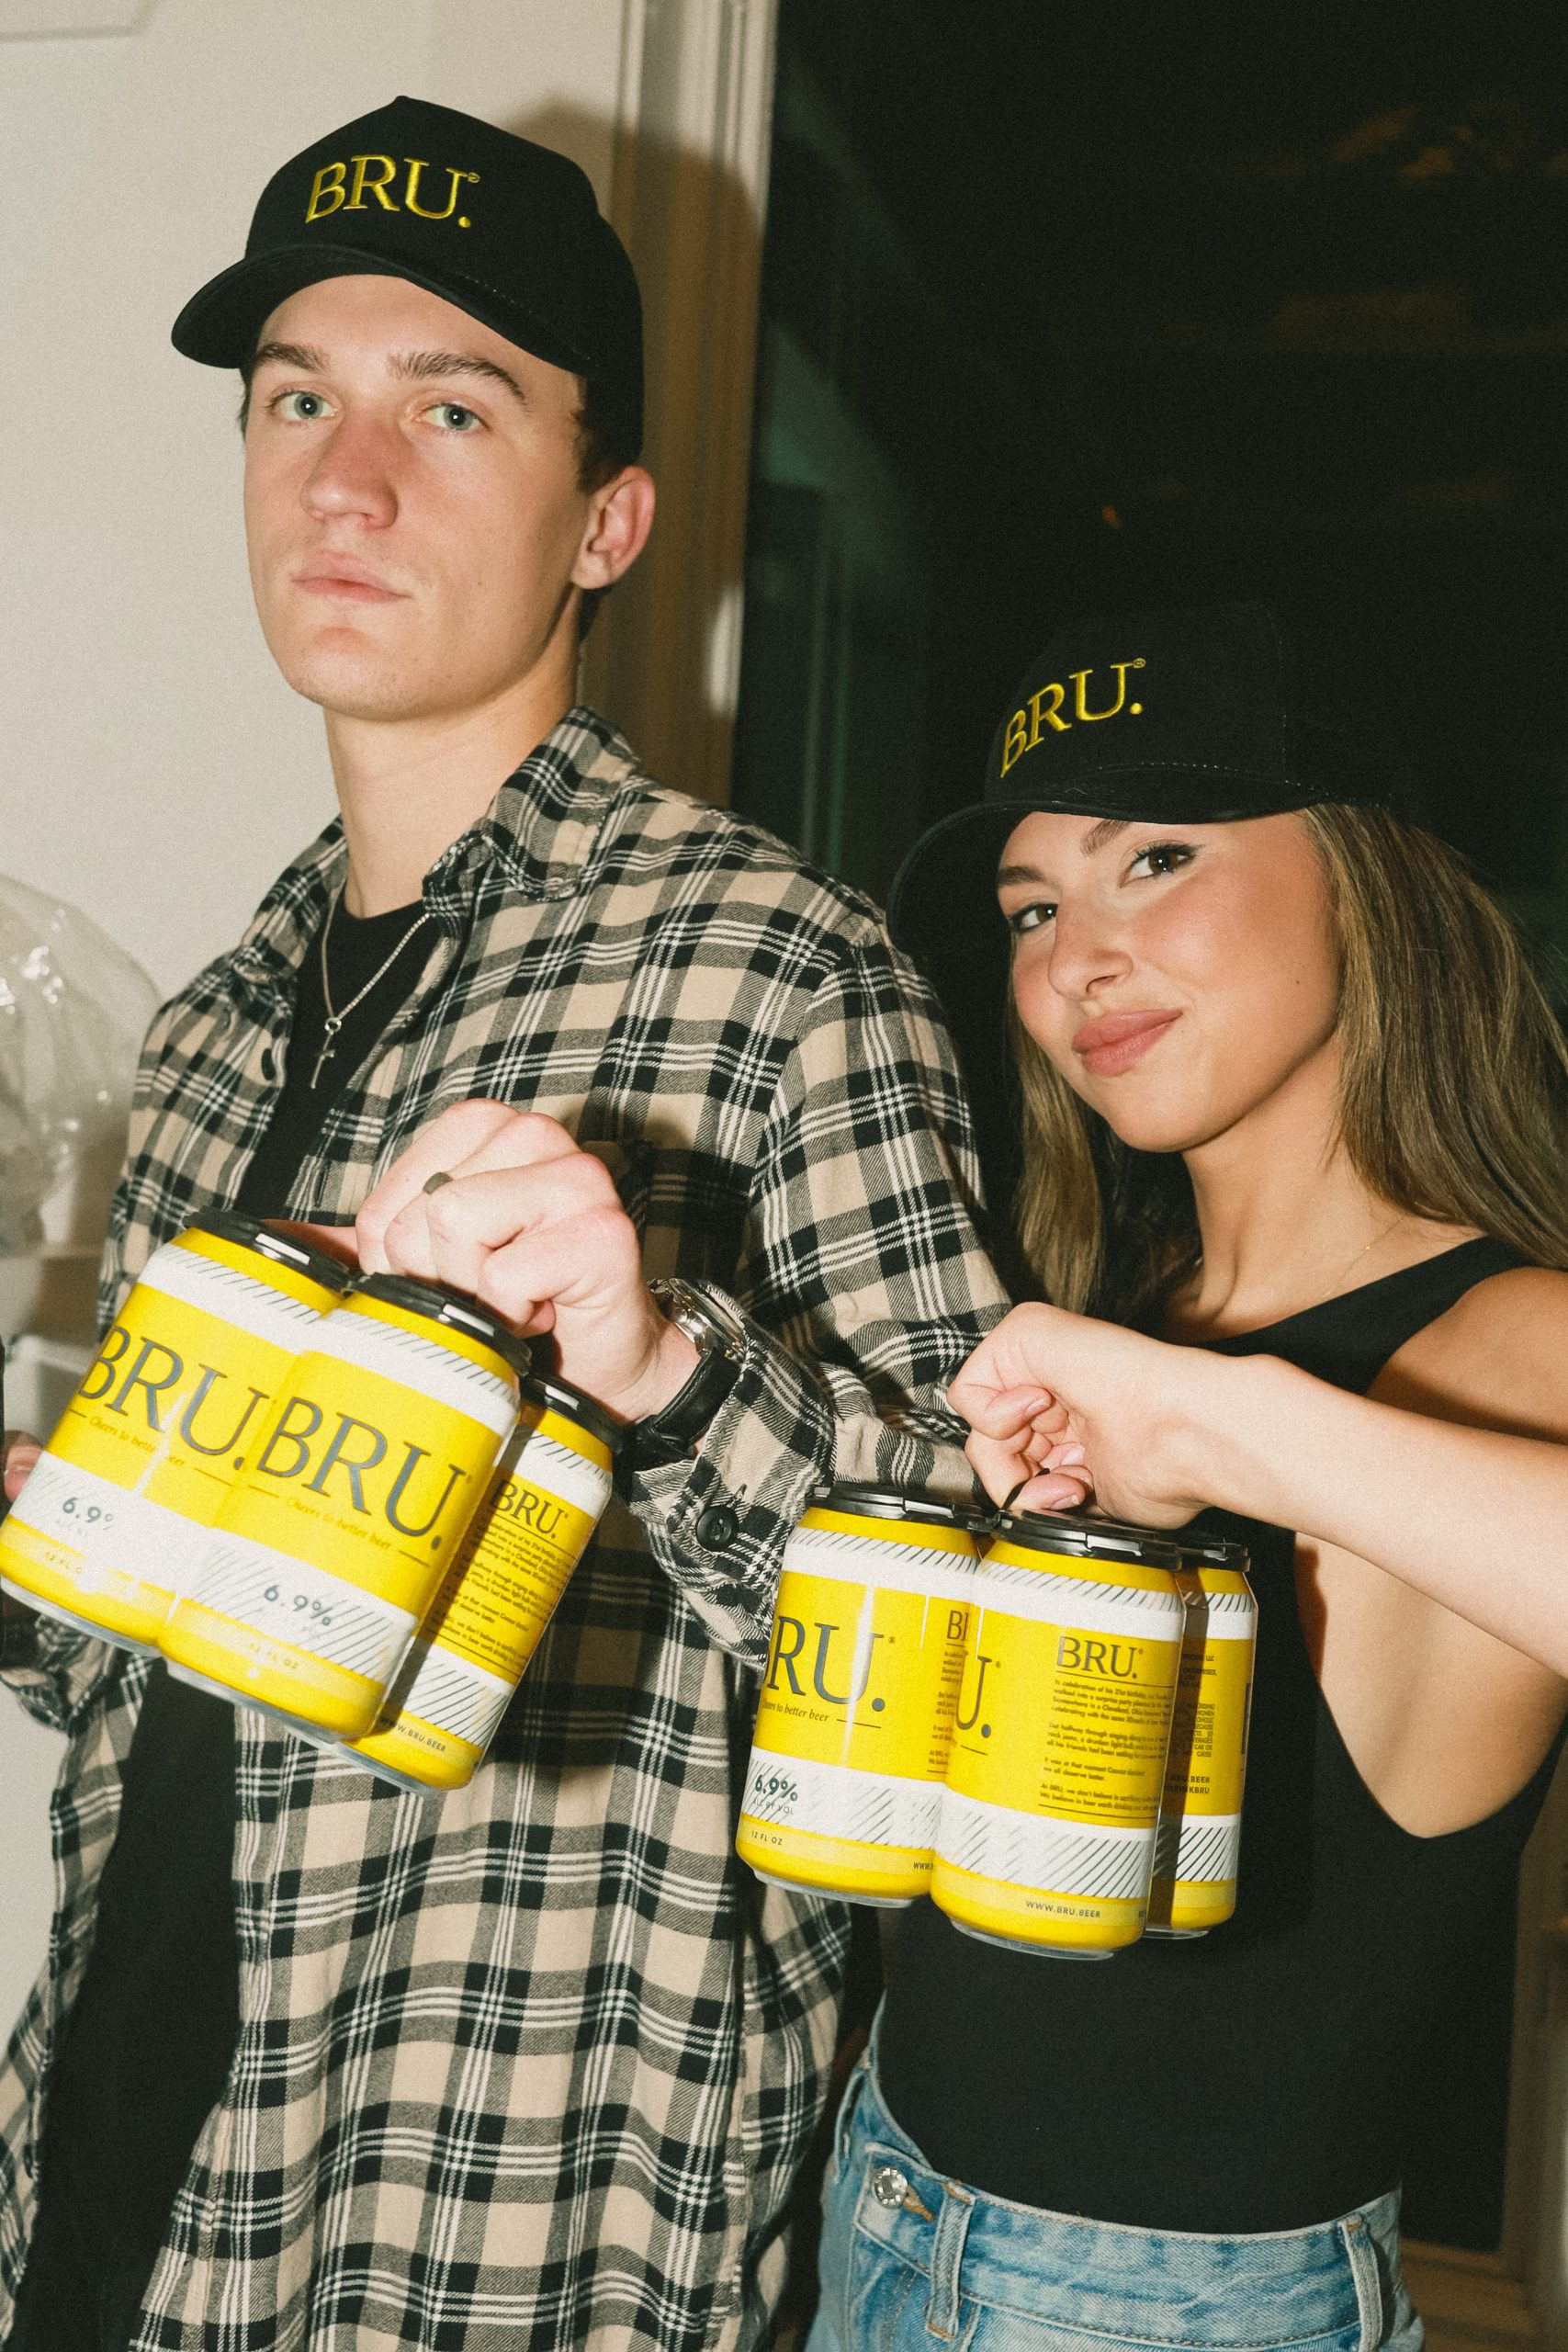 Will Hobick & Woman Holding BRU Beer